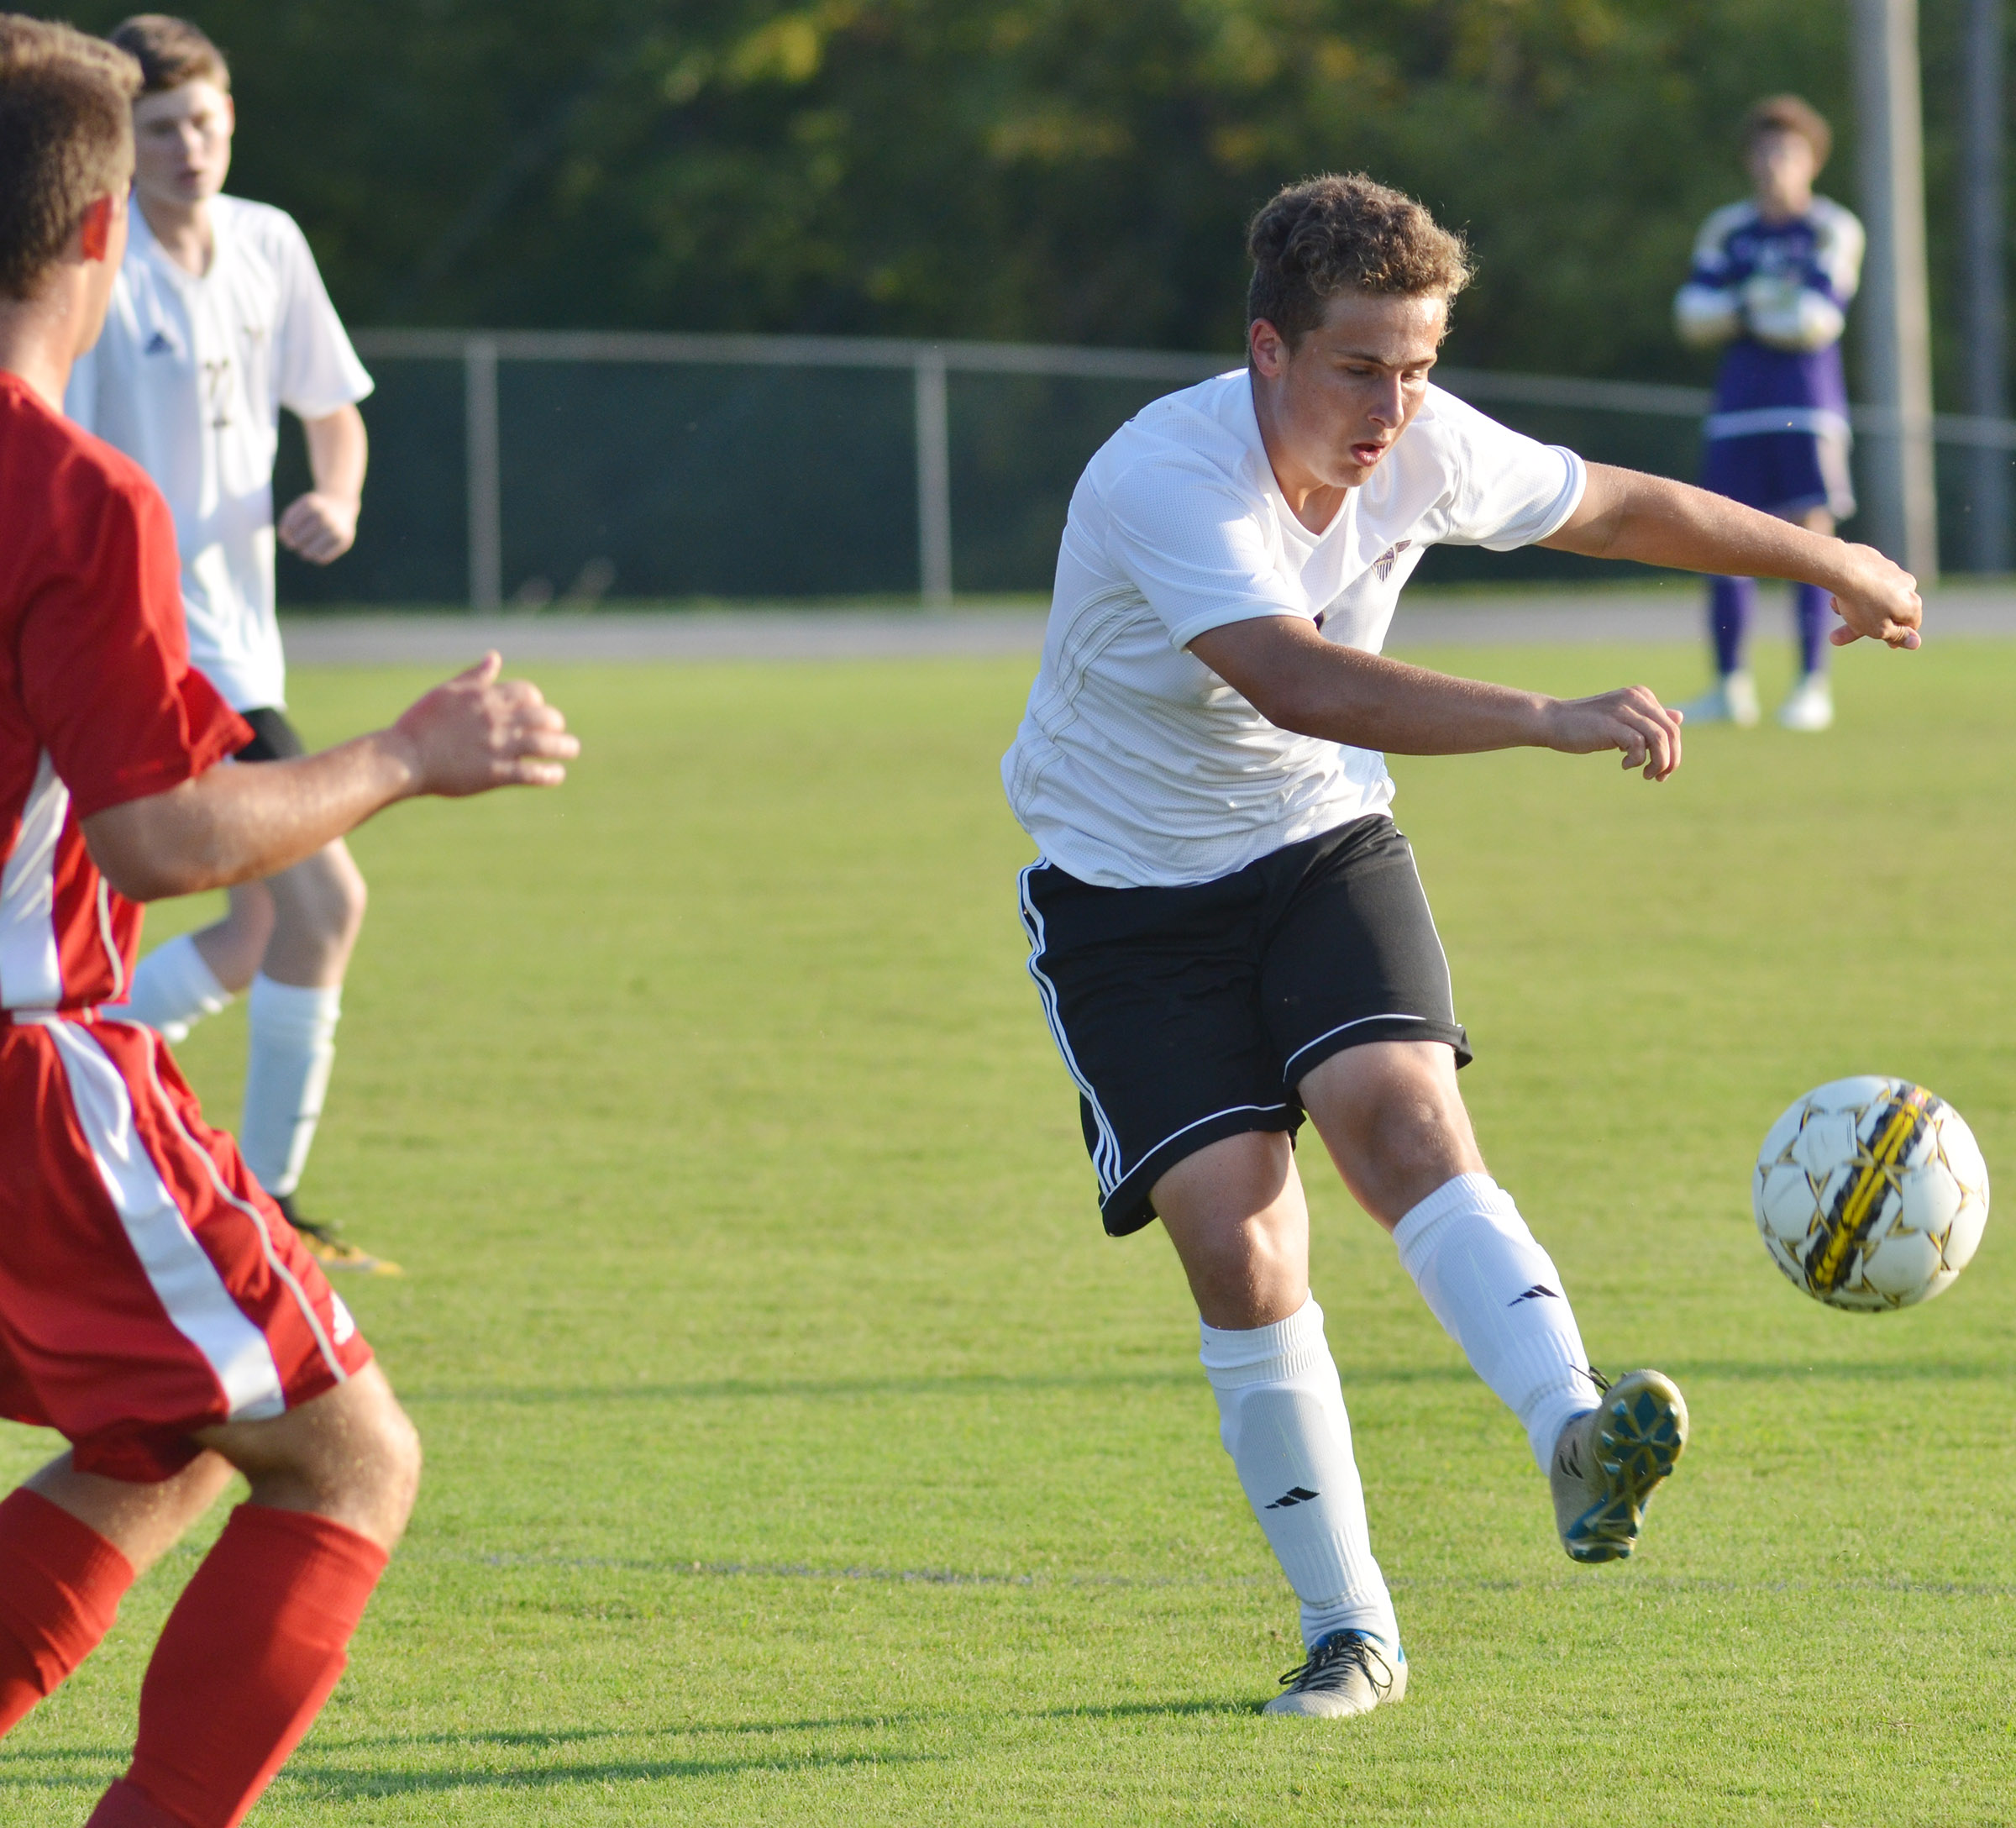 CHS junior Brody Weeks kicks the ball.